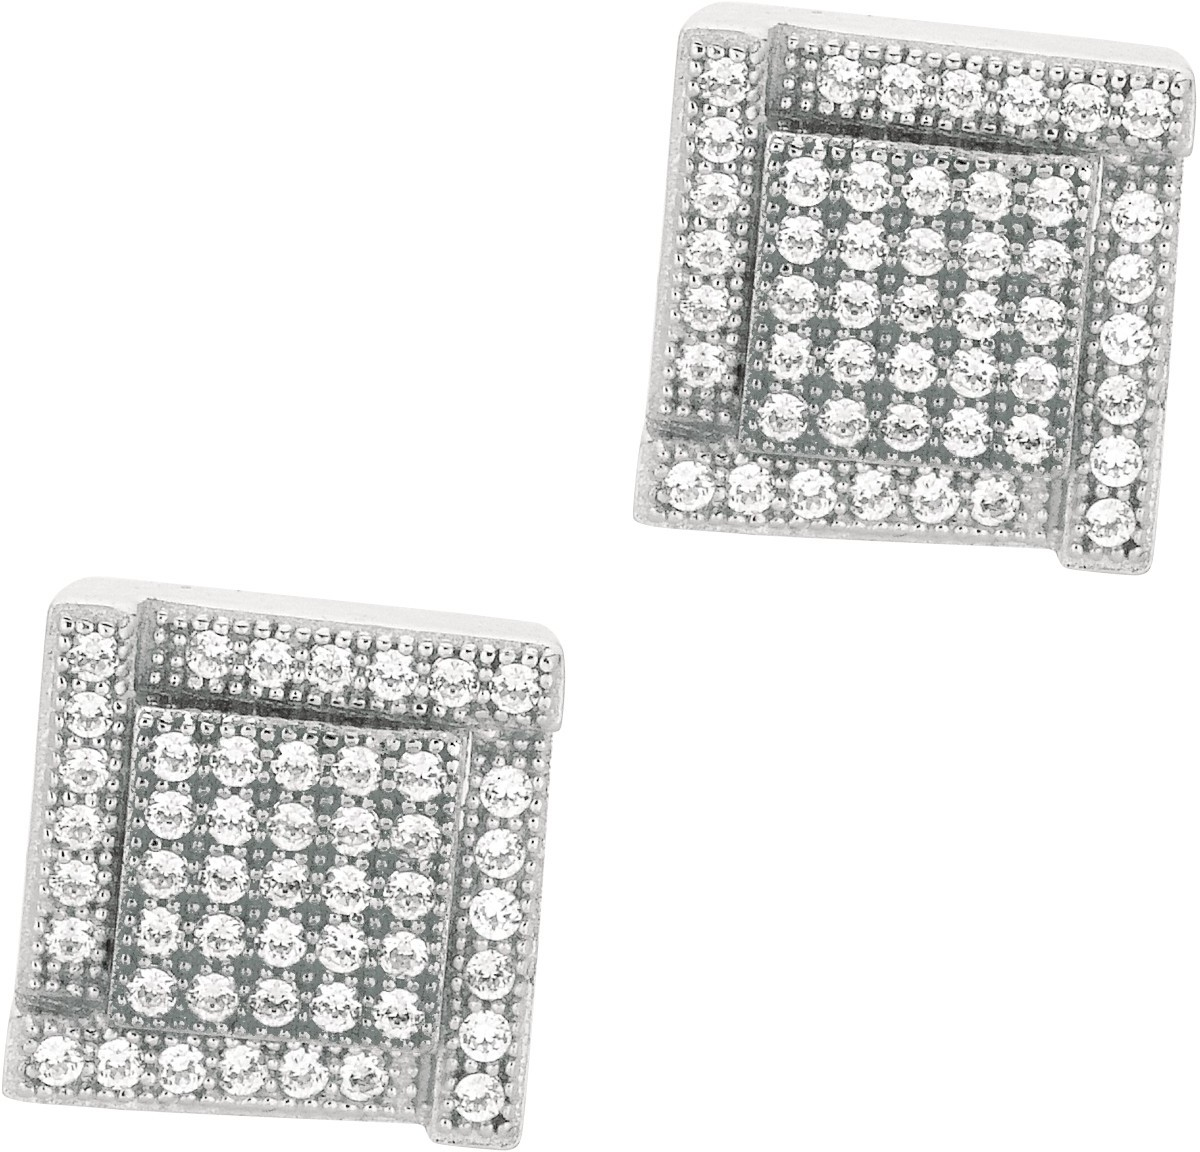 "Silver Rhodium Plated Shiny 10.0mm (3/8"") Square Clear Cubic Zirconia (CZ) Post Earrings (BTAGE465)"